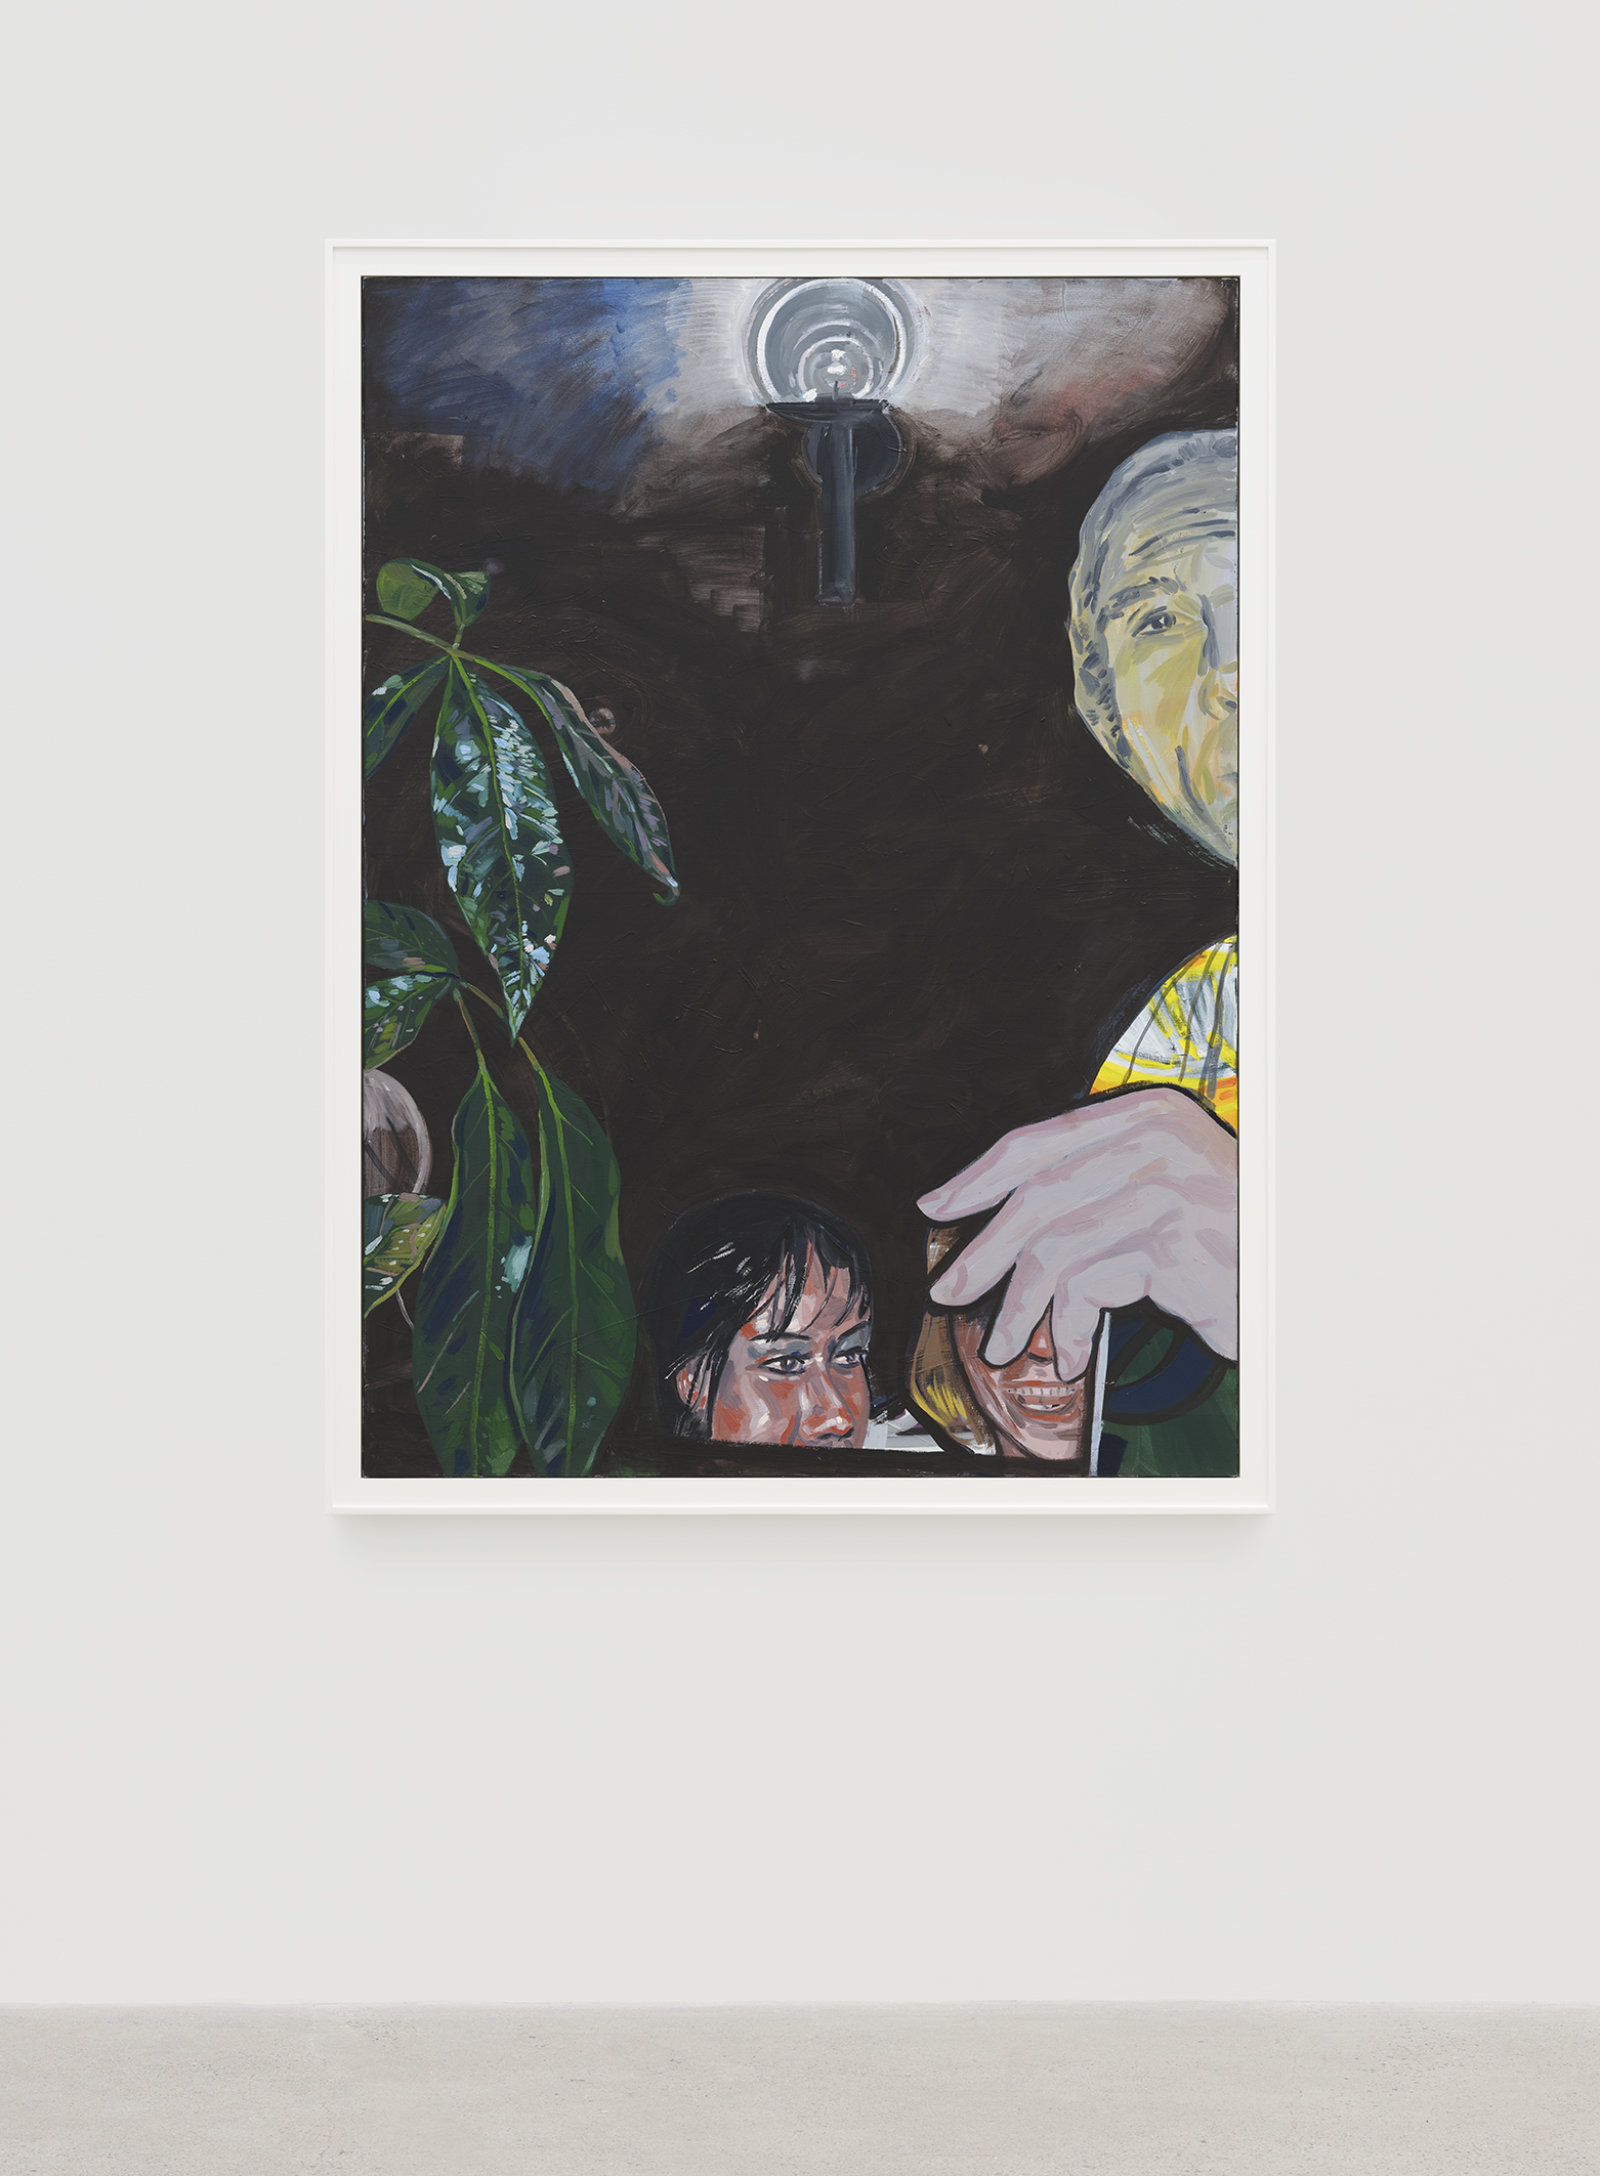 Damian Moppett, Untitled (Party with Plant), 2020, oil on canvas, 67 x 50 in. (170 x 127 cm) by Damian Moppett